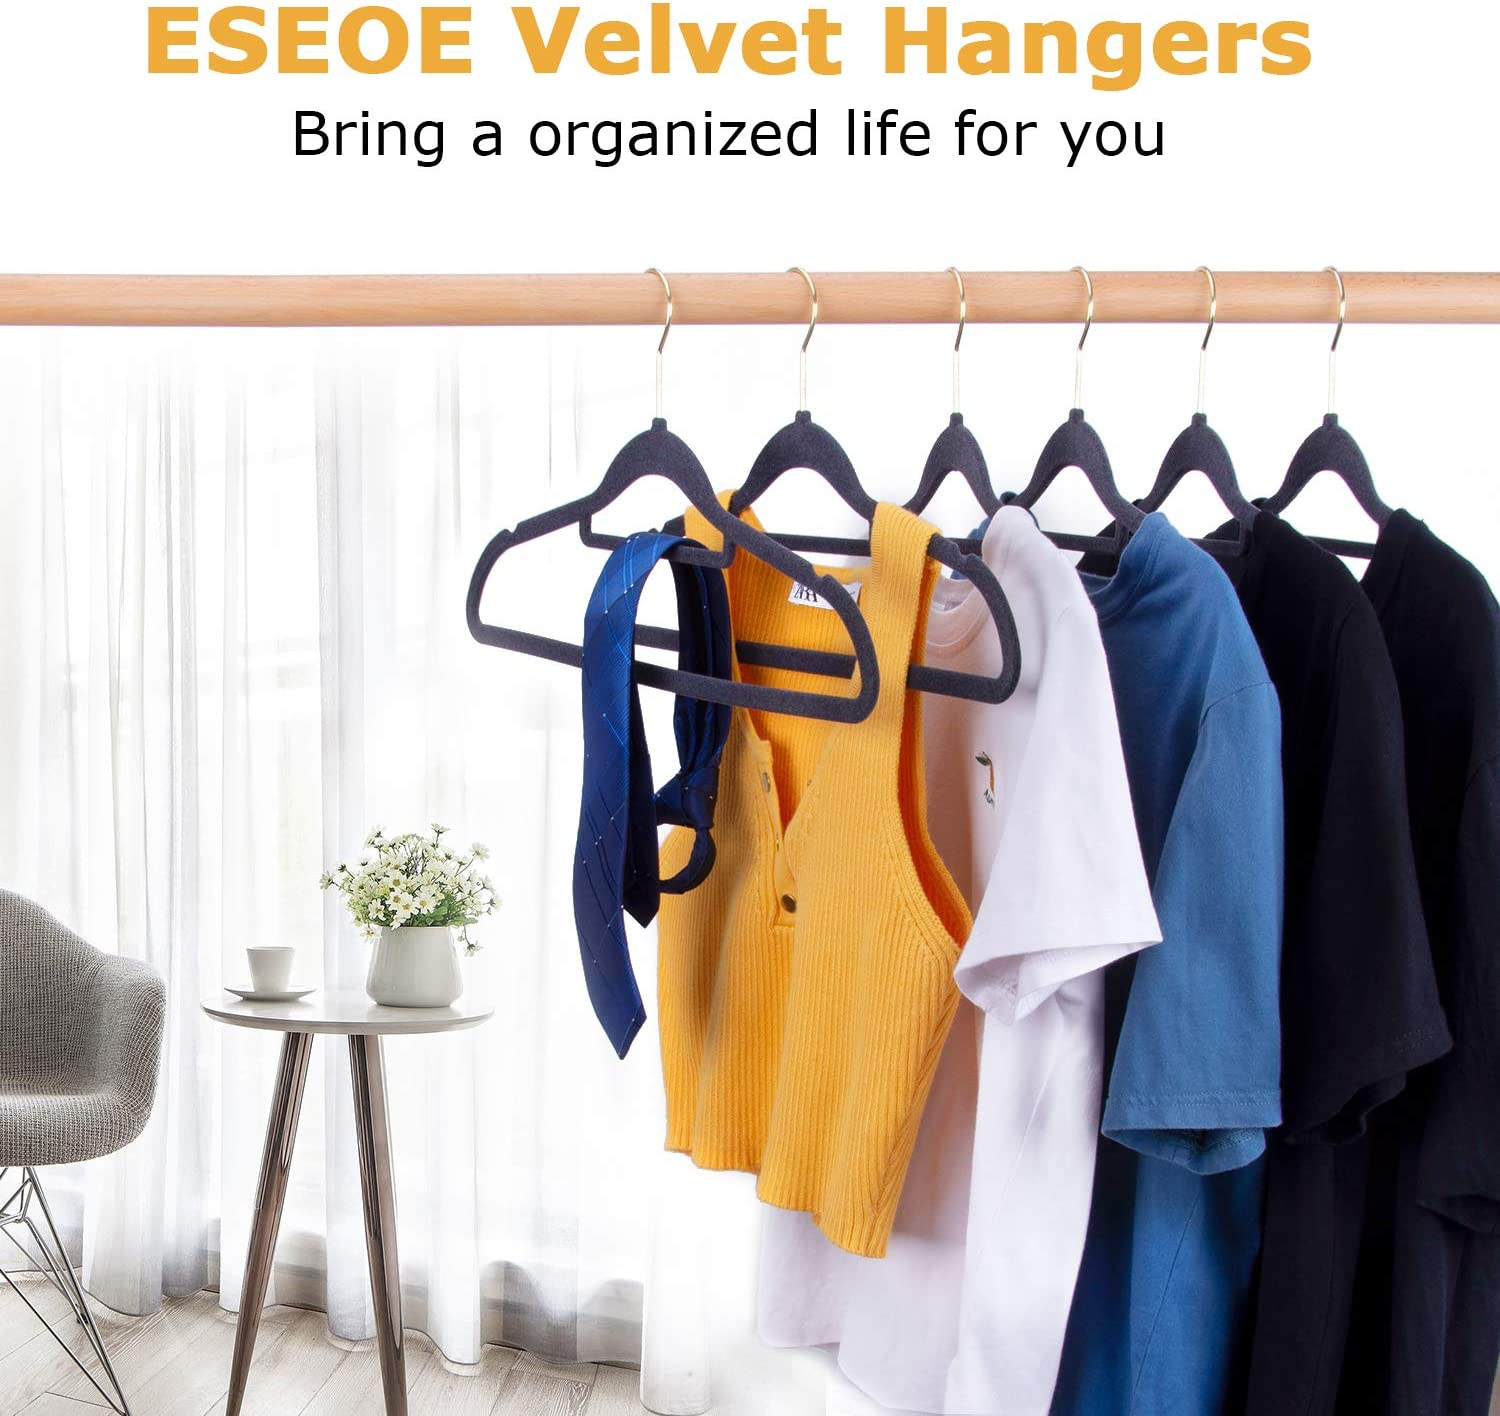 Ties 50 Pack Non Slip Suit Hangers with Gold Color Swivel Hook,Ultra Thin Space Saving,Wide for Coat ESEOE Velvet Clothes Hangers Gray Shirt Pants